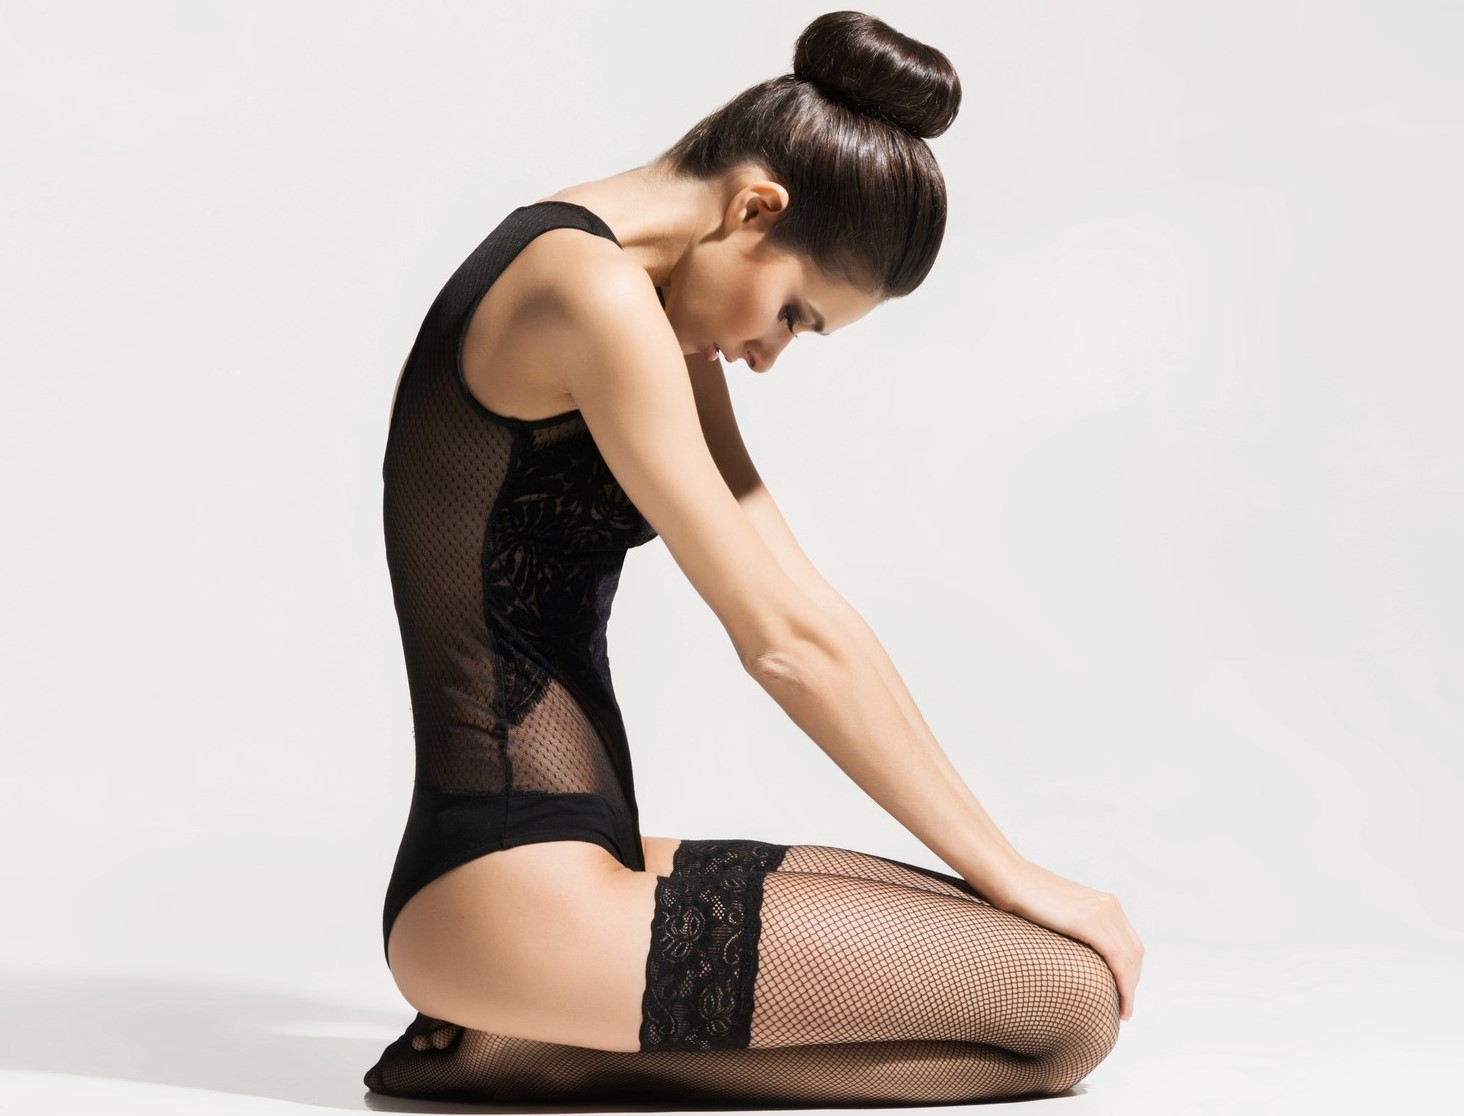 Woman kneeling in black hold up stockings and leotard lingerie